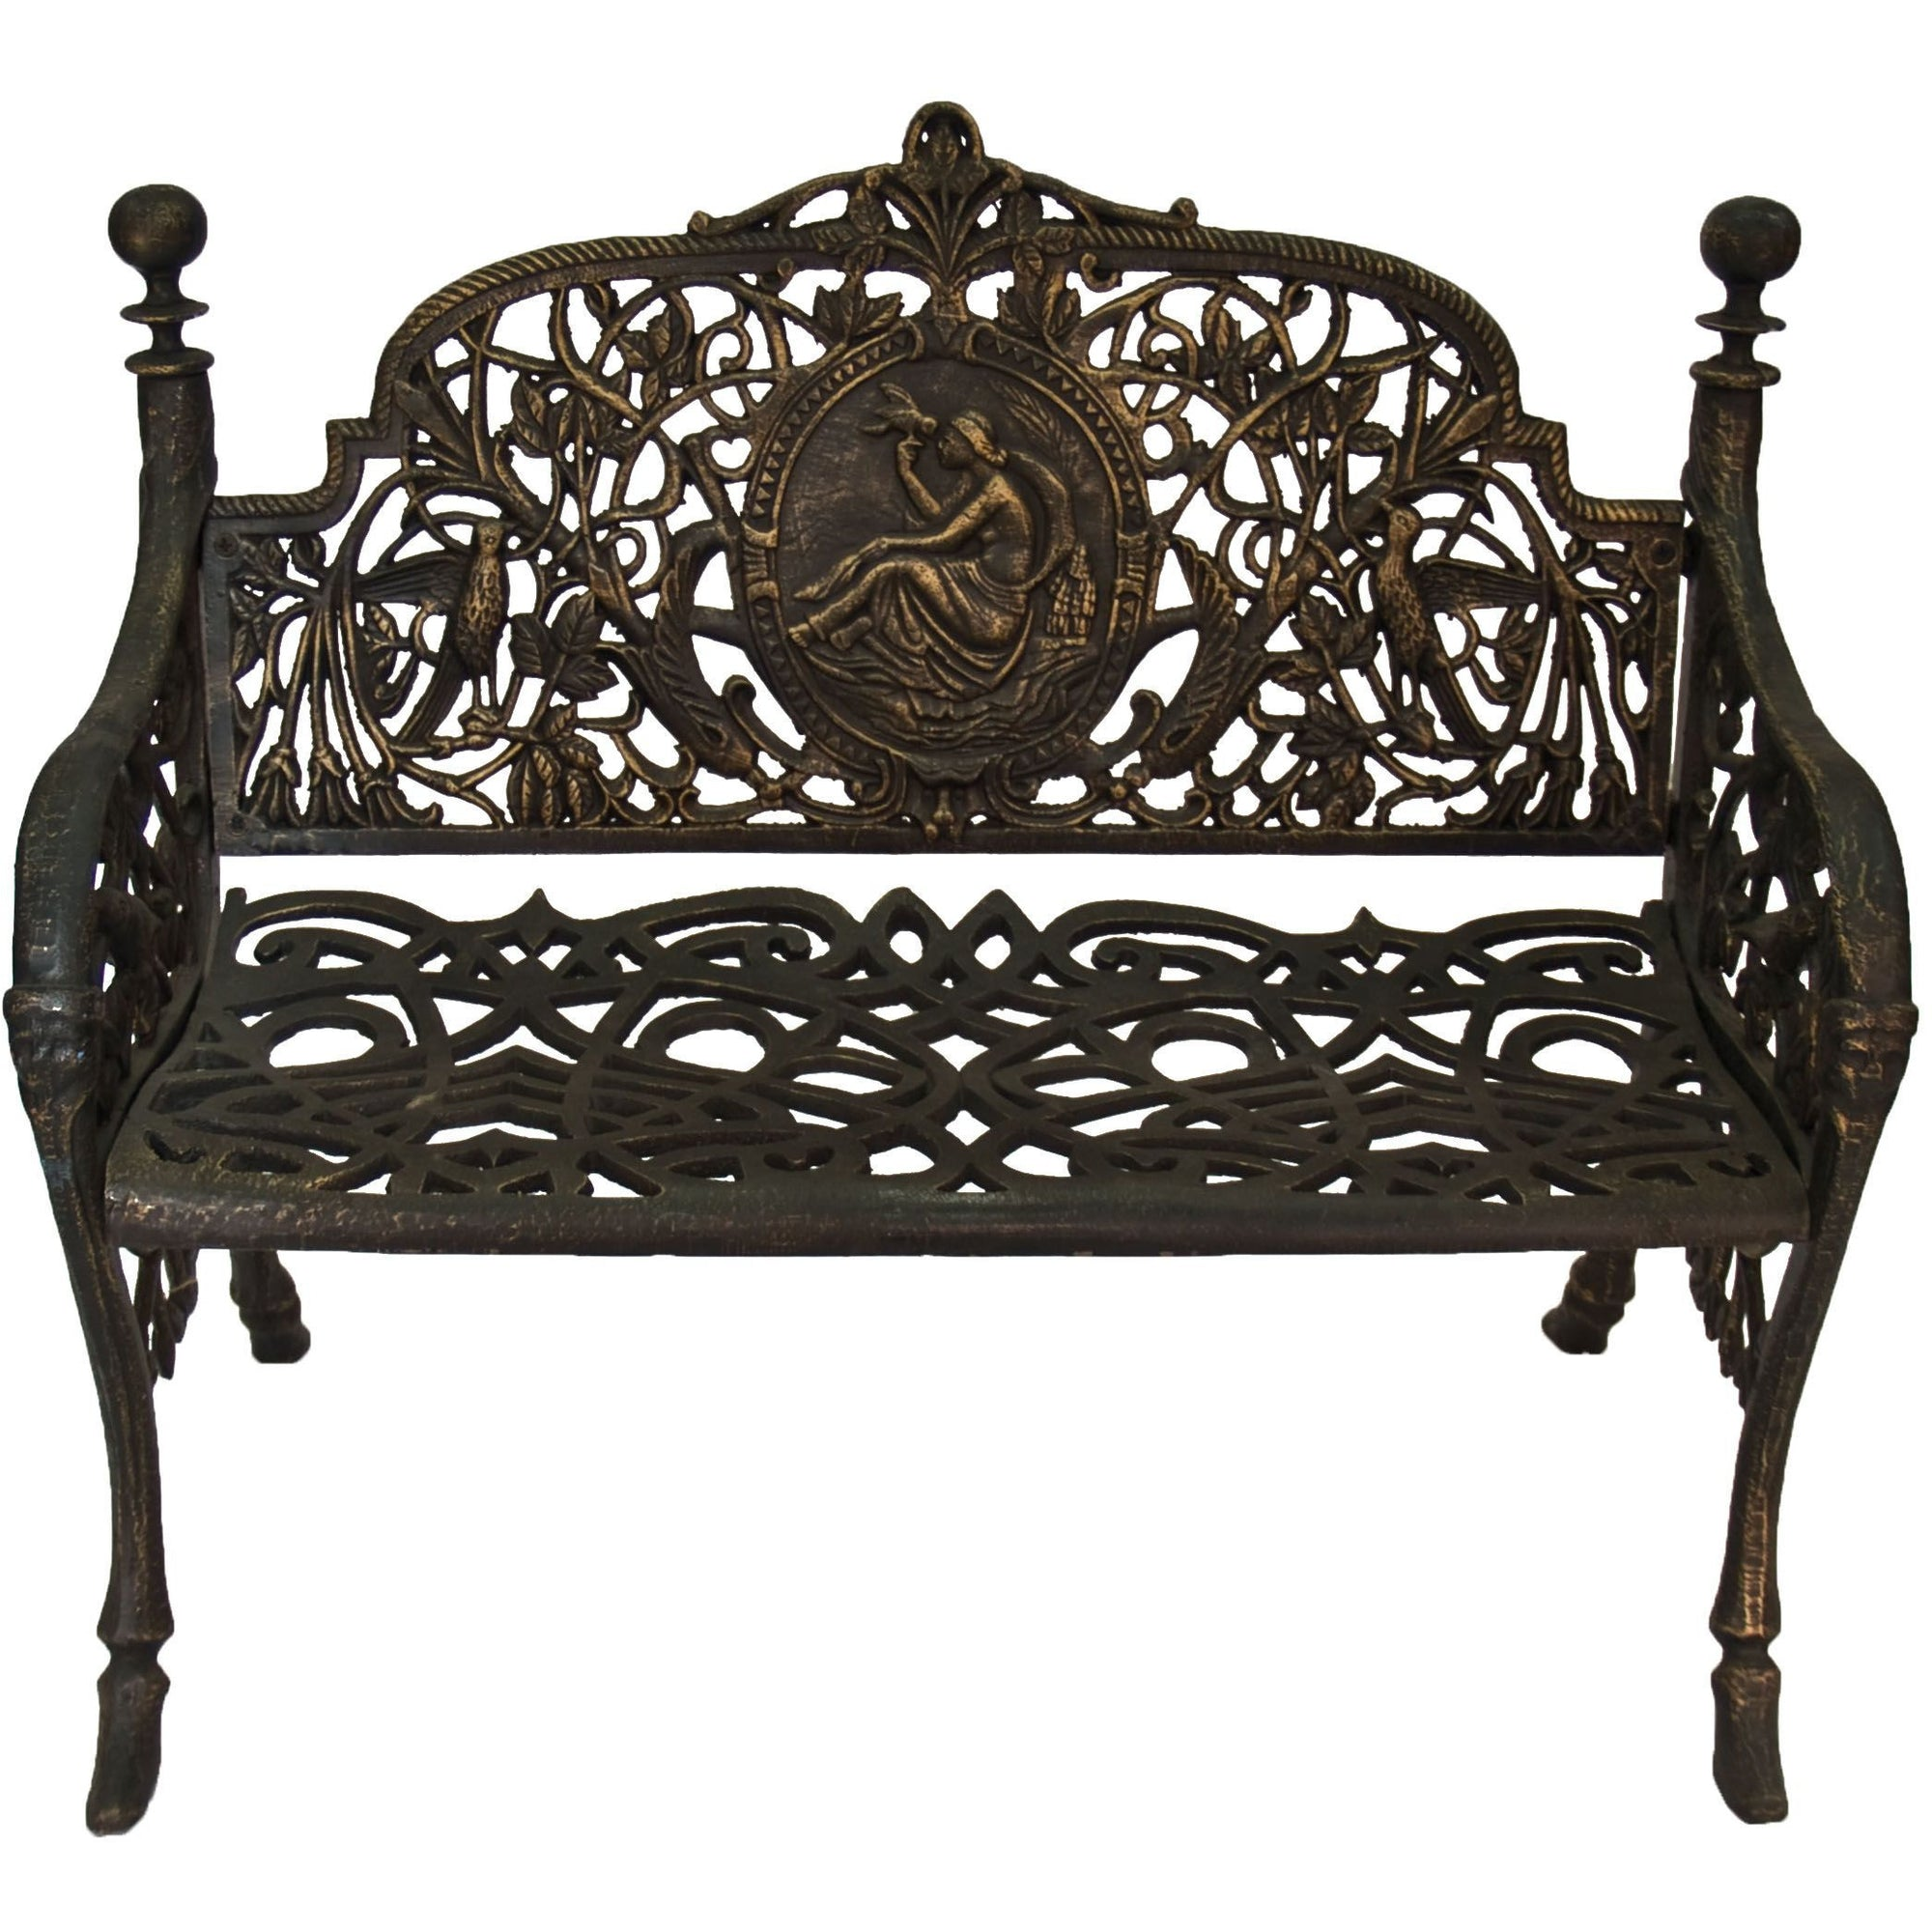 Small Cameo Cast Iron Bench - Outdoor Living Essentials